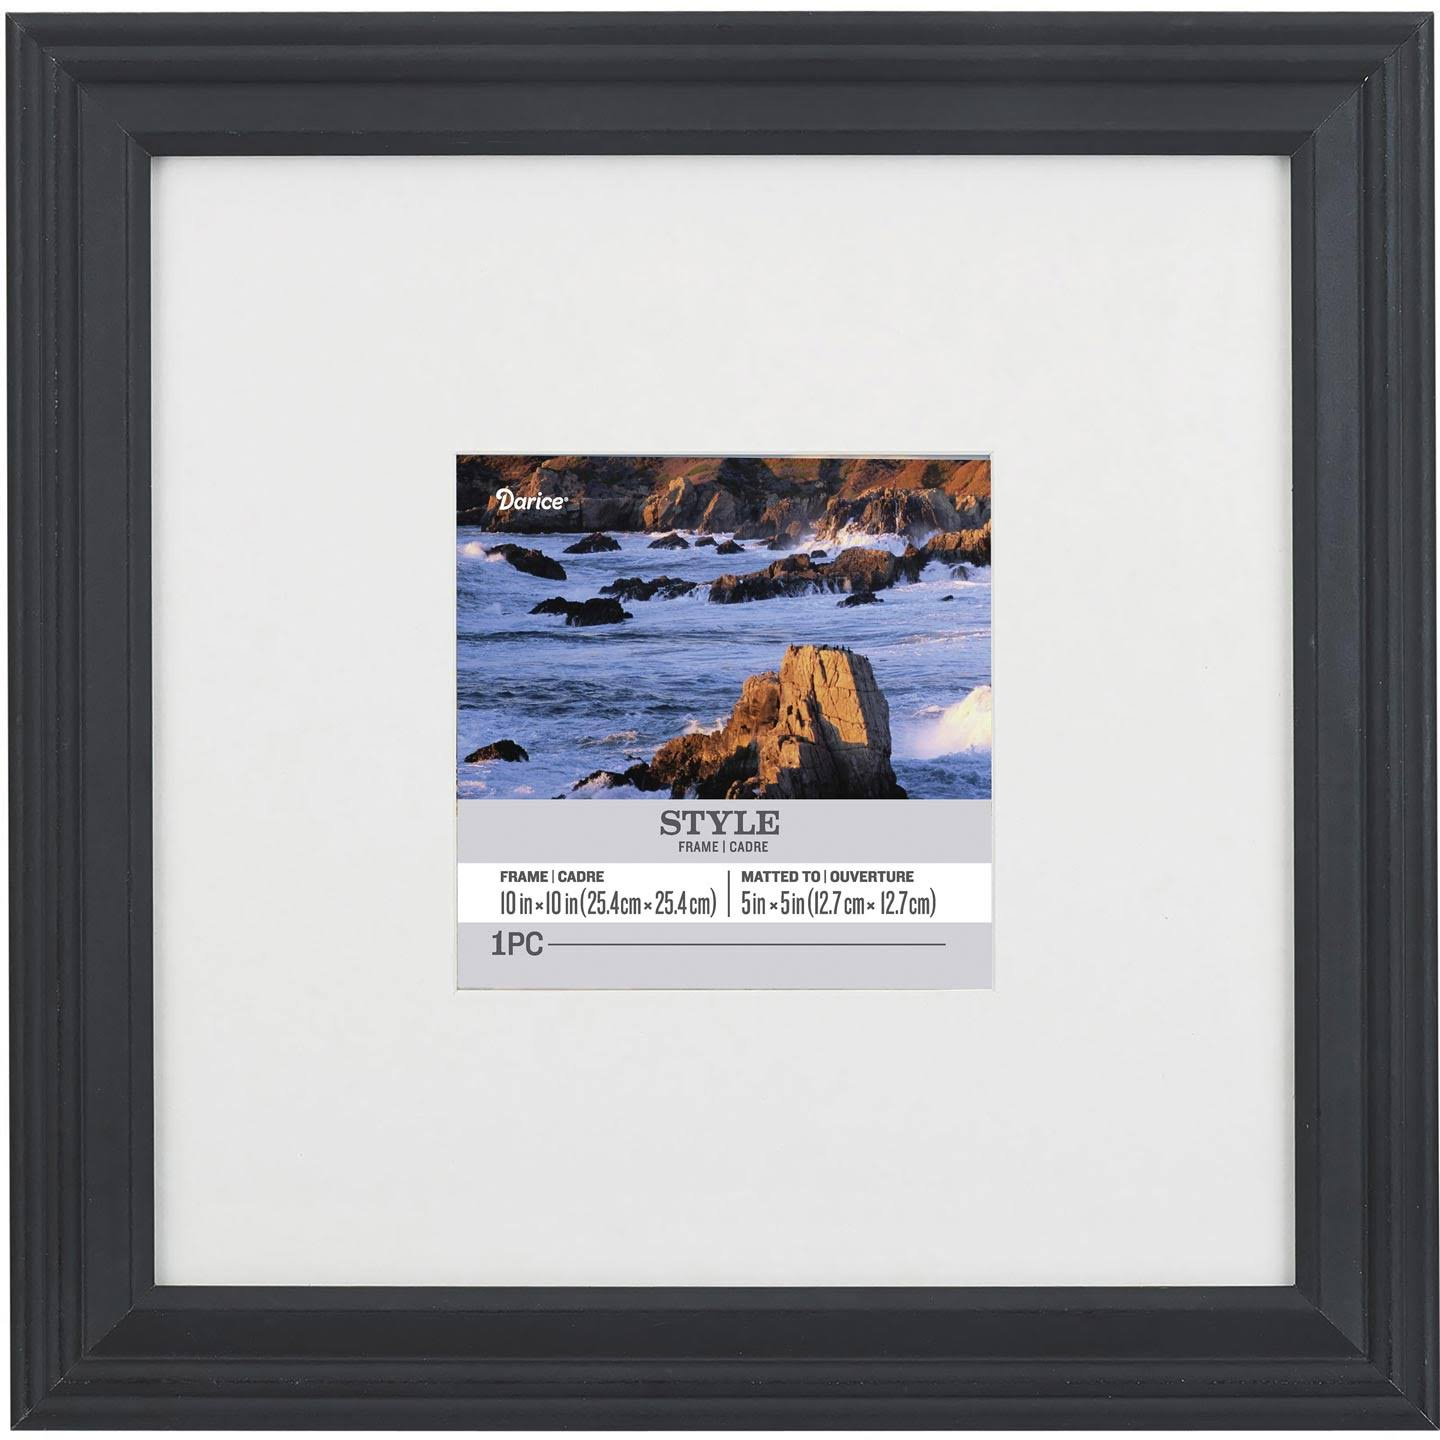 Darice Matted Picture Frame: Black, 10x10 to 5x5 Inches